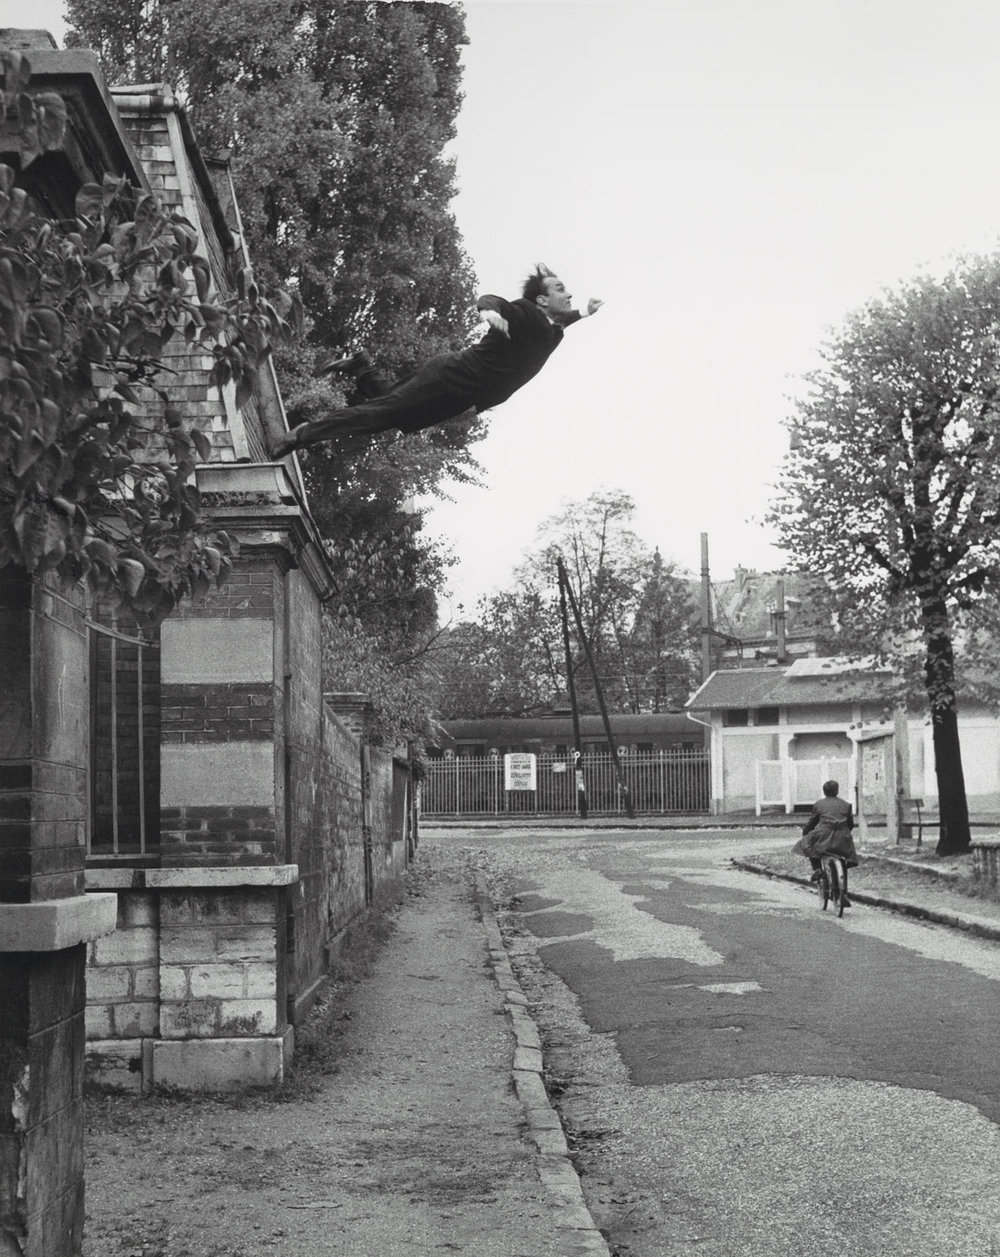 Yves Klein,  Leap Into the Void  (1960). A work of clever and profound photography/photo montage, created in the streets of Paris, acts as the starting point for the adventure we are about to set out on with the KPU Paris/Kassel Field School.